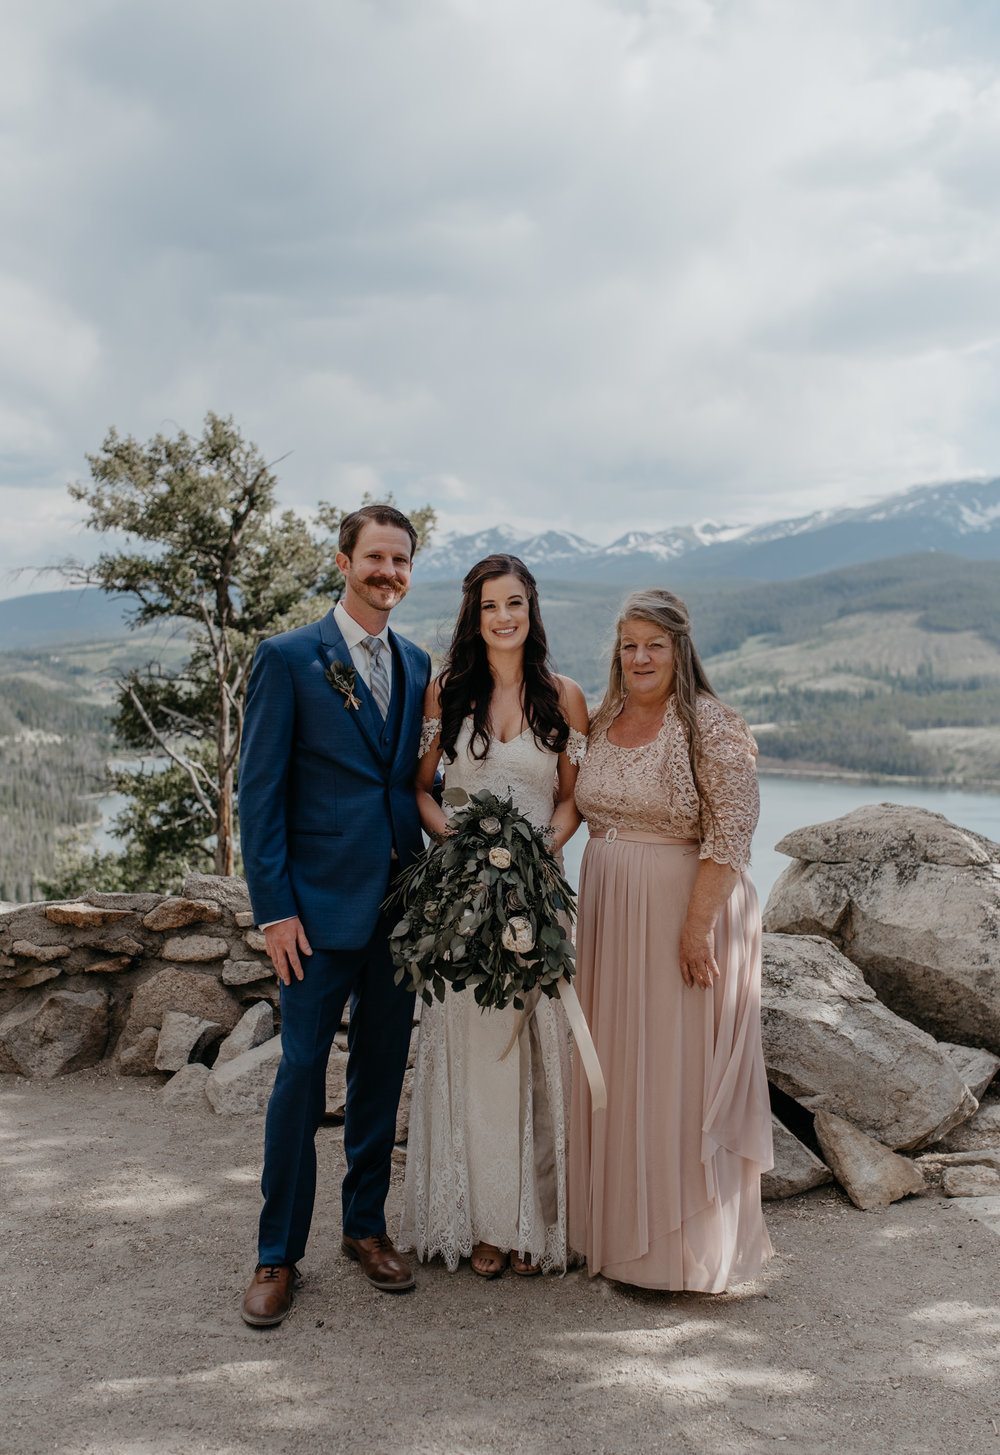 Family photos at Sapphire Point wedding in Breckenridge, Colorado. Colorado mountain wedding photographer.